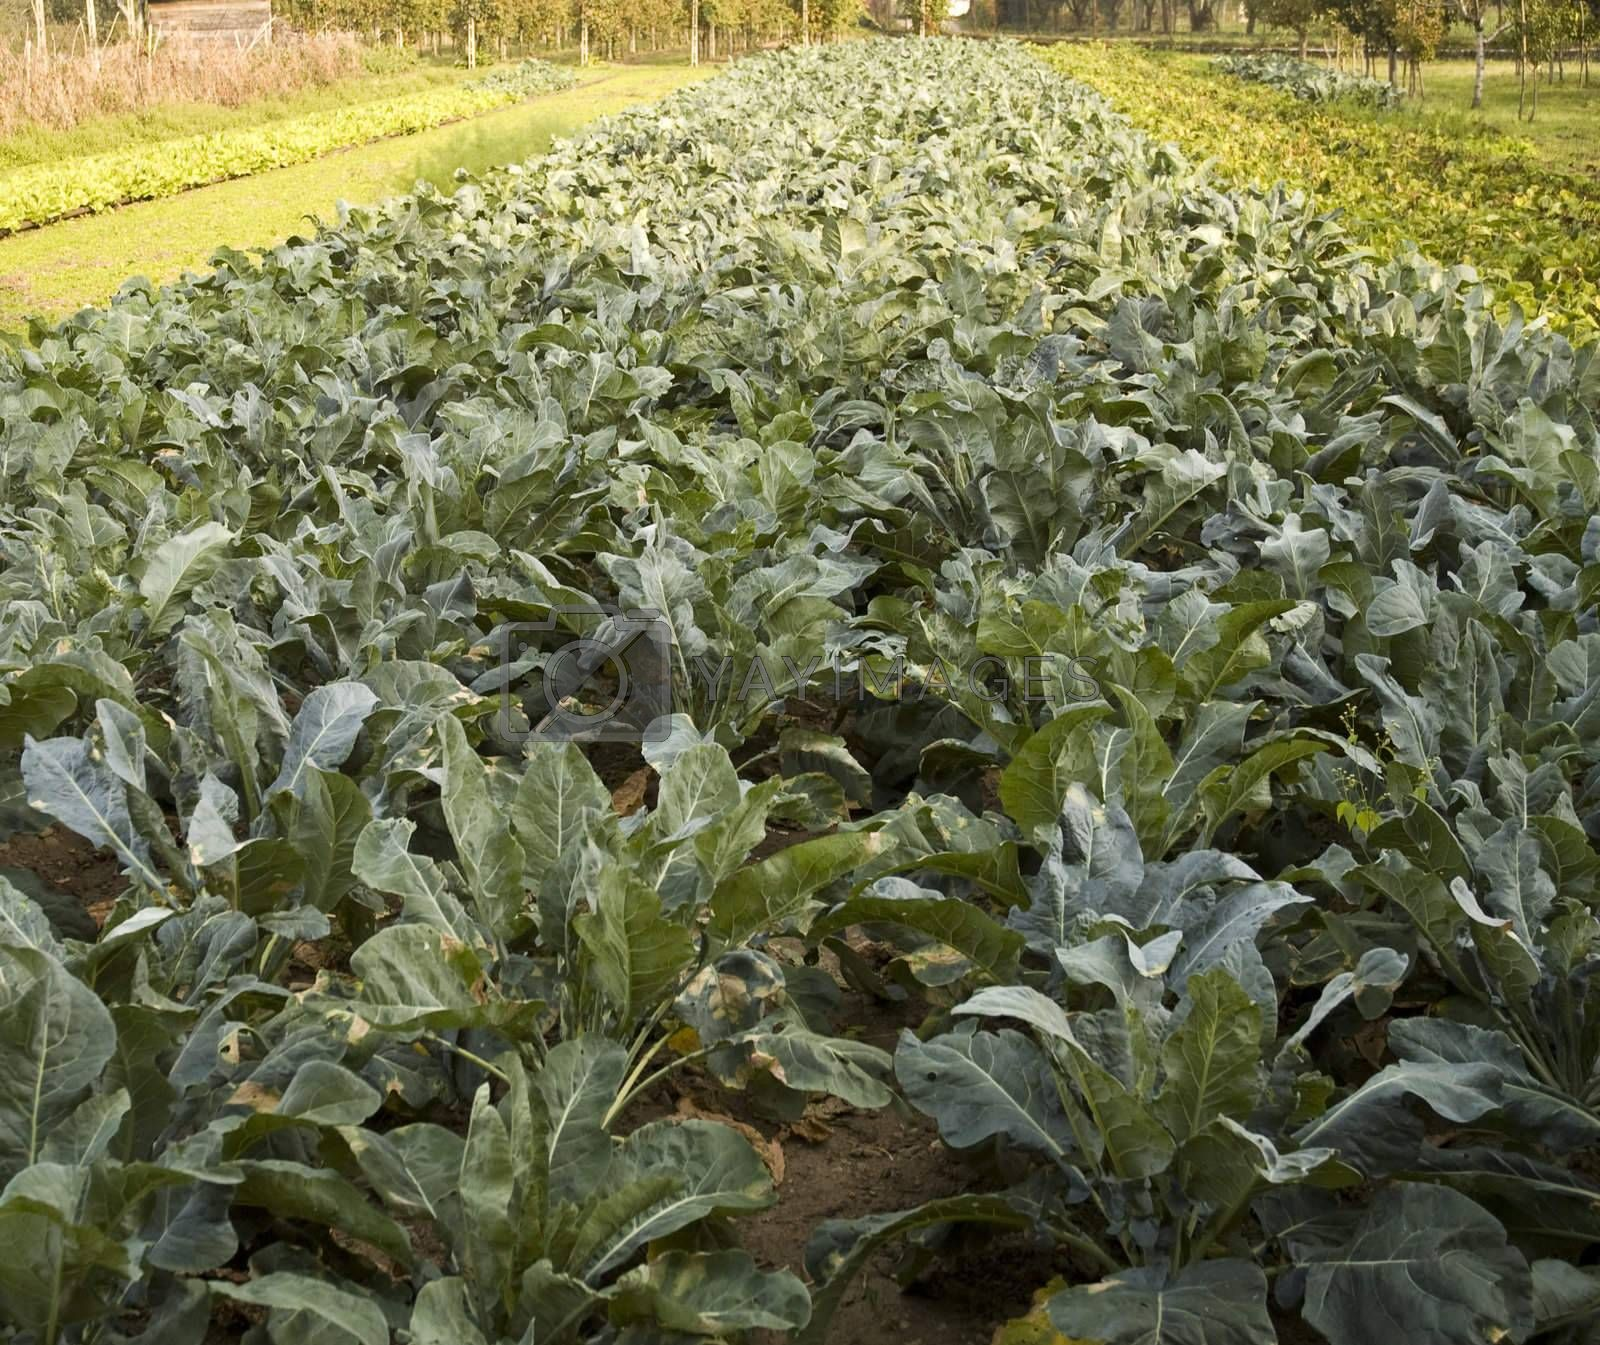 Cultivation of spinach in a vegetable garden